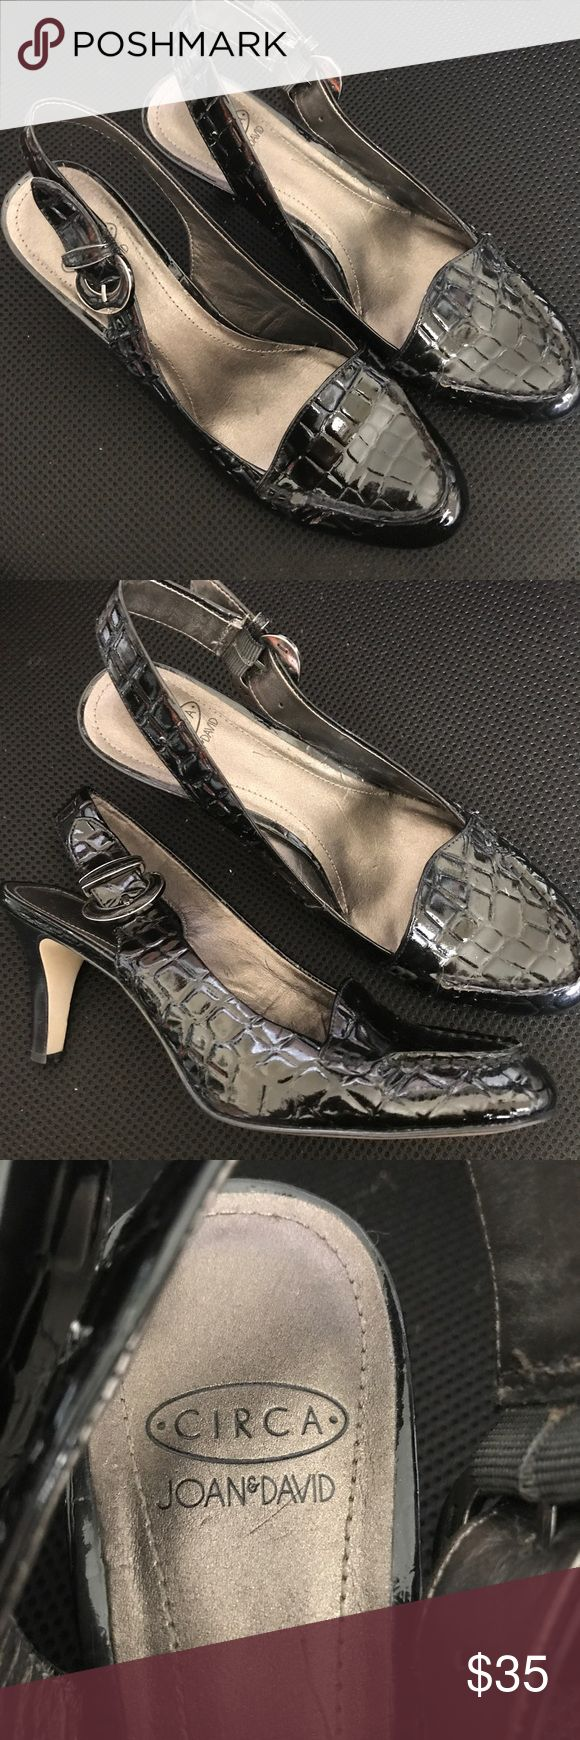 Joan David Circa Croc Black Patent Slingback Heels Joan David Circa Croc Black Patent Slingback Heels.  Looks new except the bottom of the shoe.  Wore a handful of times.  Size 8M. These are gorgeous for any professional, business attire. Joan & David Shoes Heels